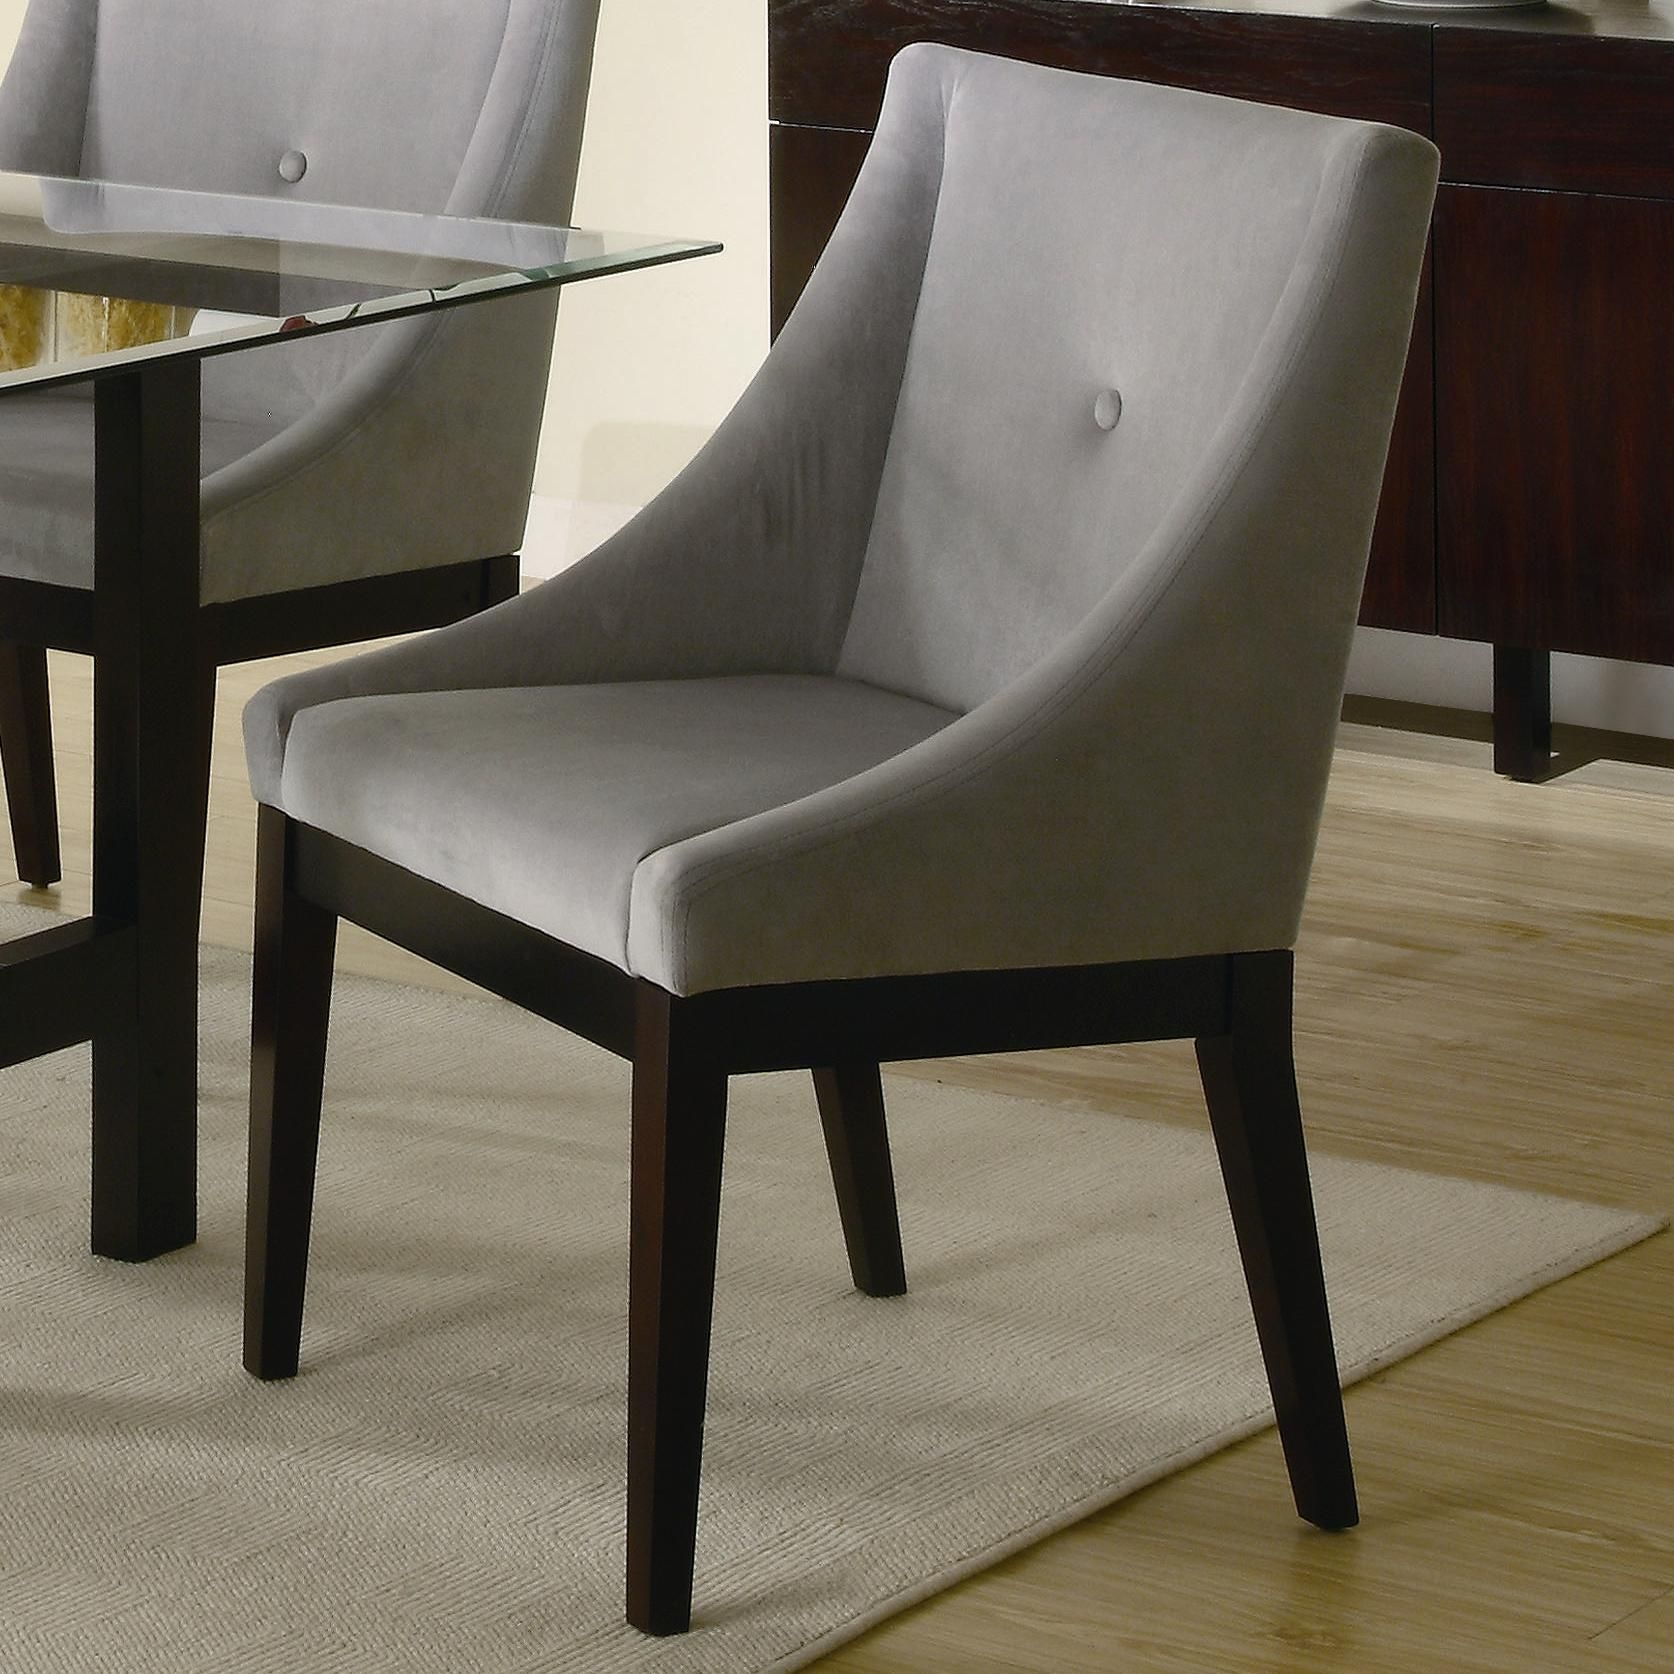 Carver Arm Chairs   Foter